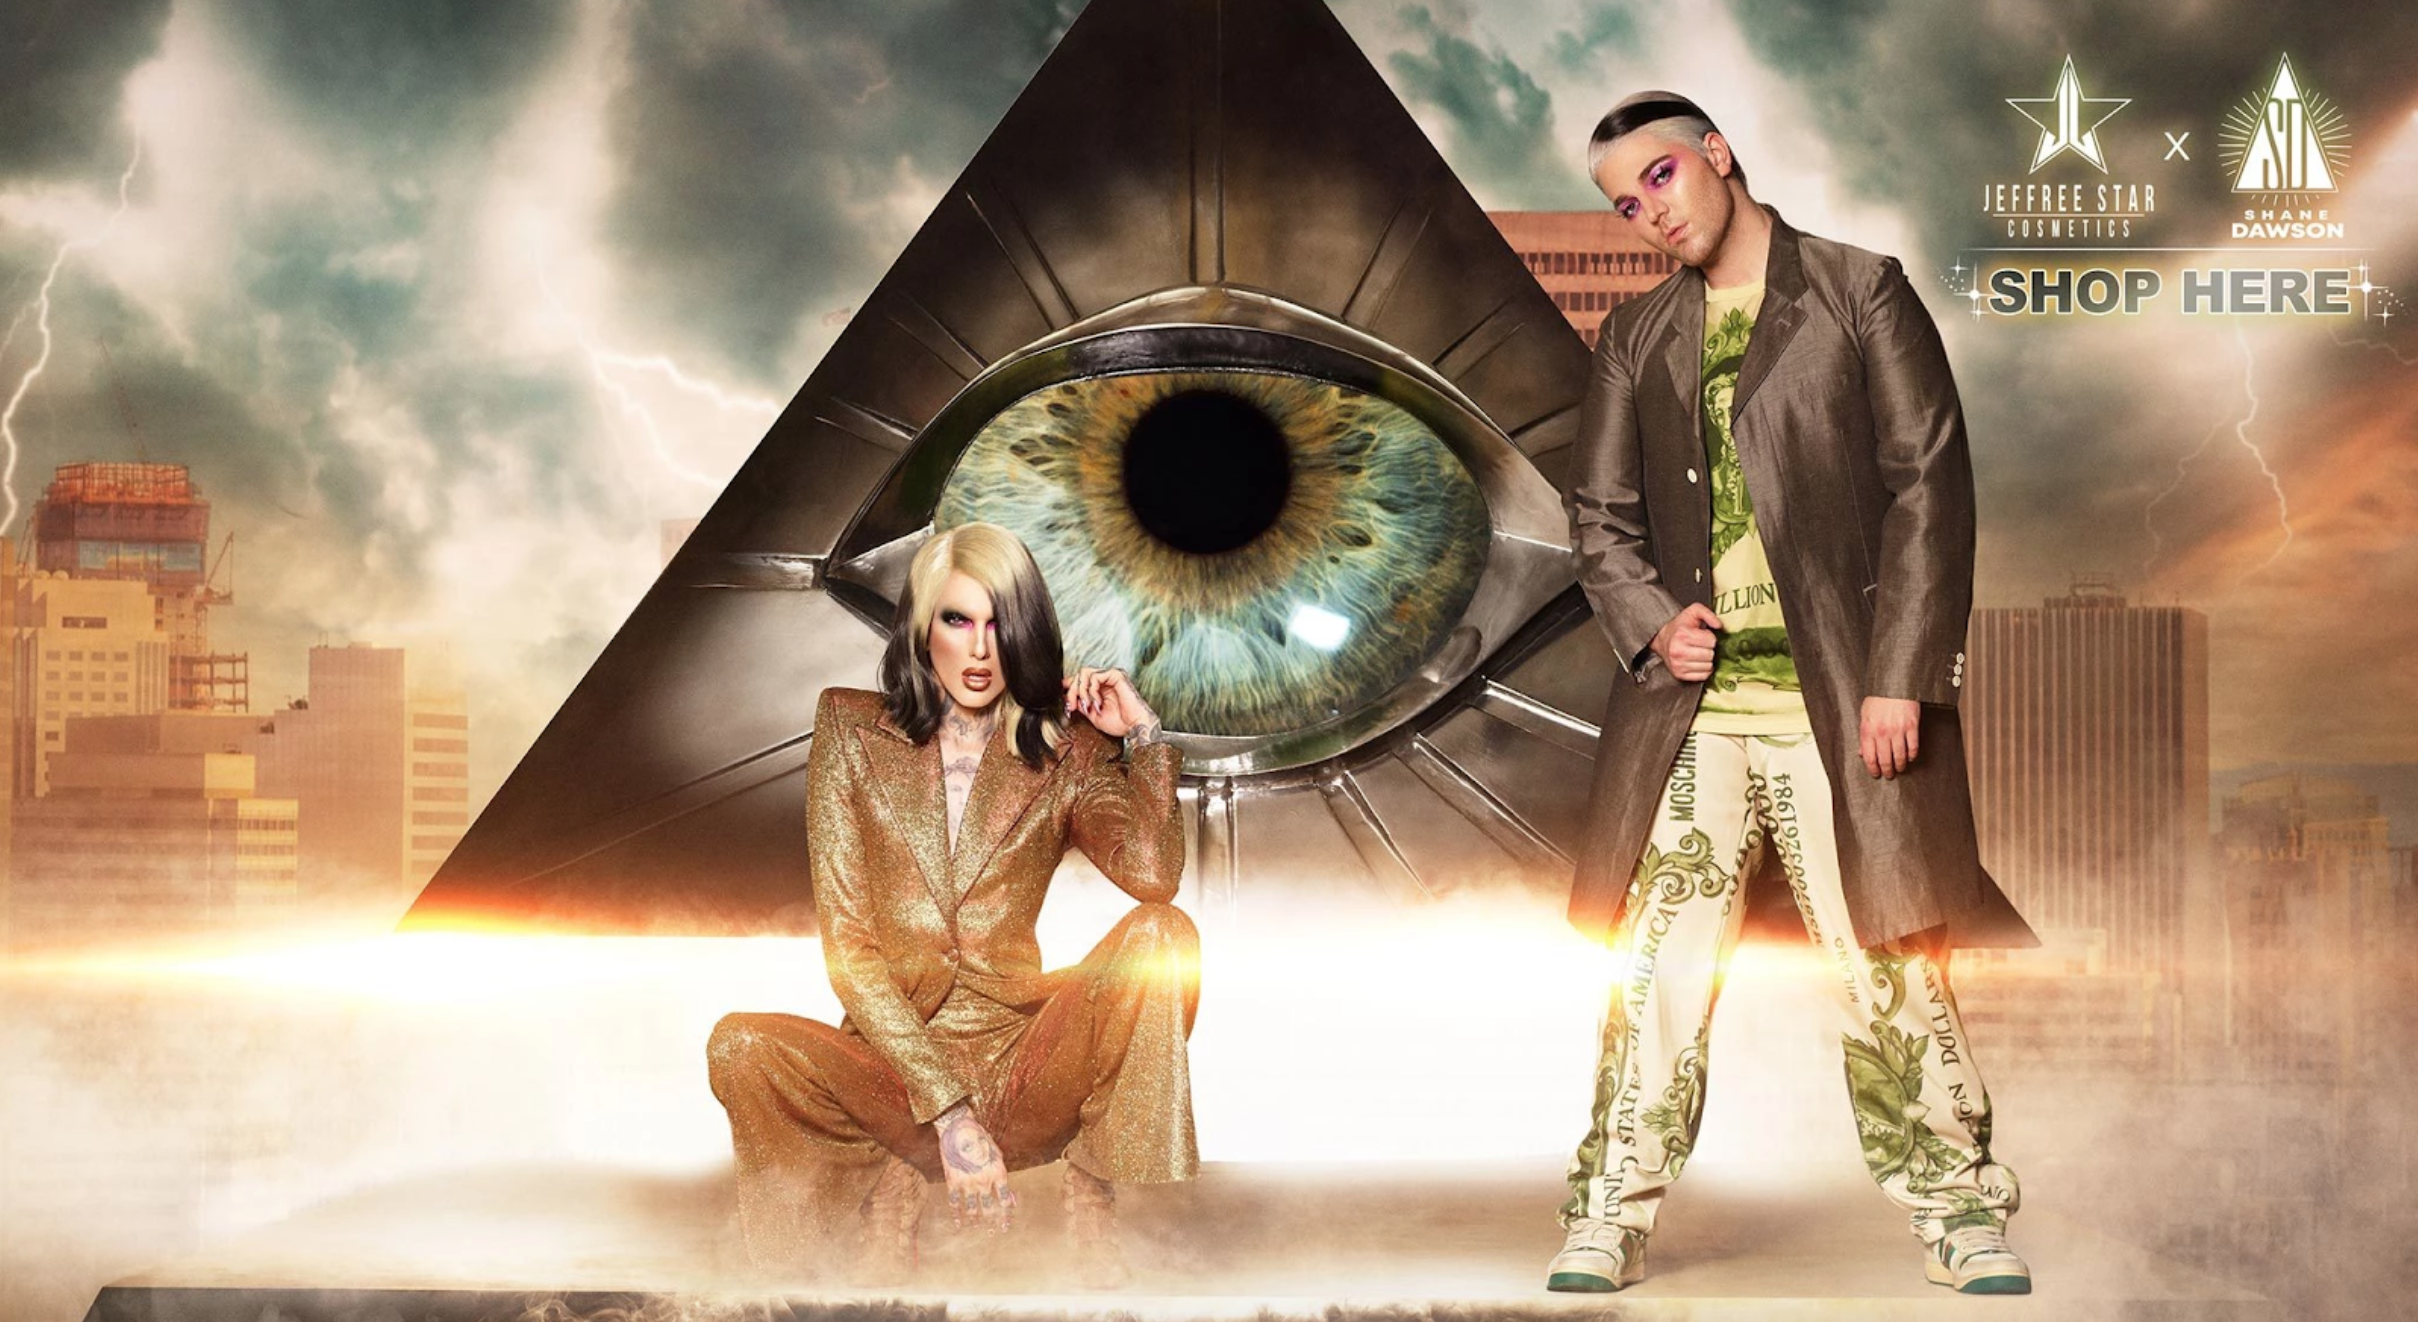 YouTubers Jeffree Star and Shane Dawson pose in a Jeffree Star Cosmetics advertisement for the Jeffree x Shane Conspiracy Collection.